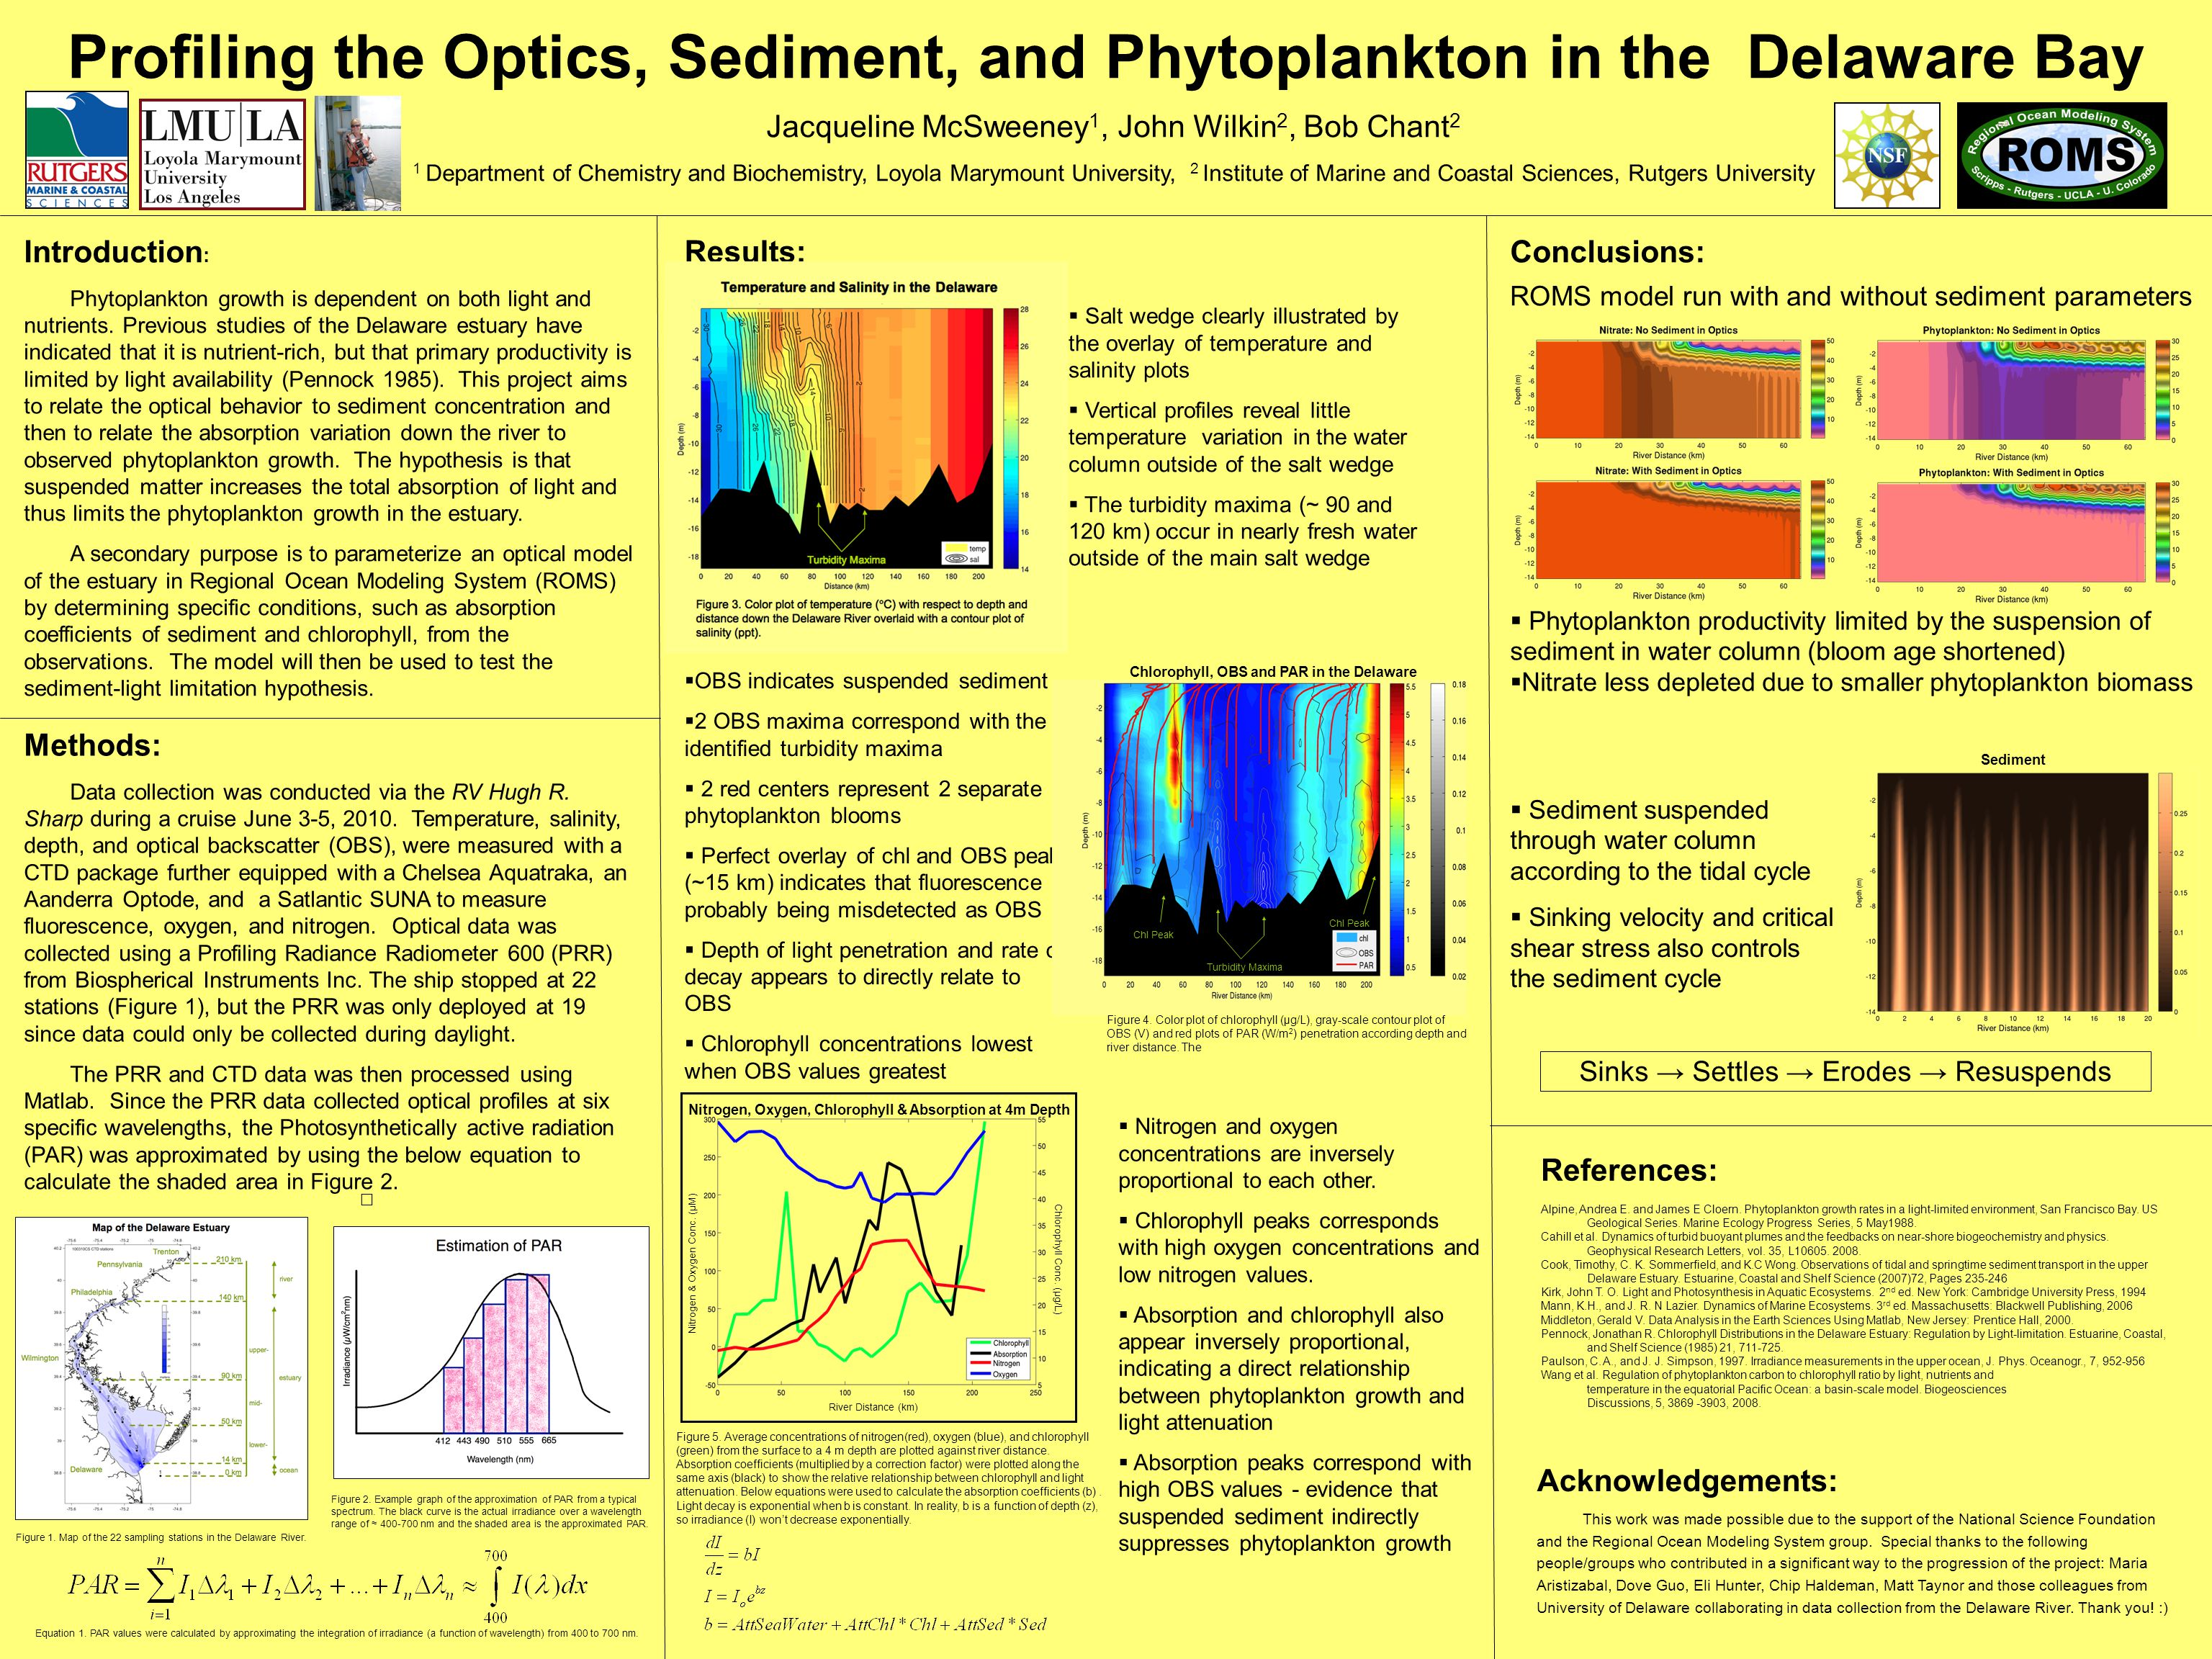 Profiling the Optics, Sediment, and Phytoplankton in the Delaware Bay Introduction : Phytoplankton growth is dependent on both light and nutrients. Pr